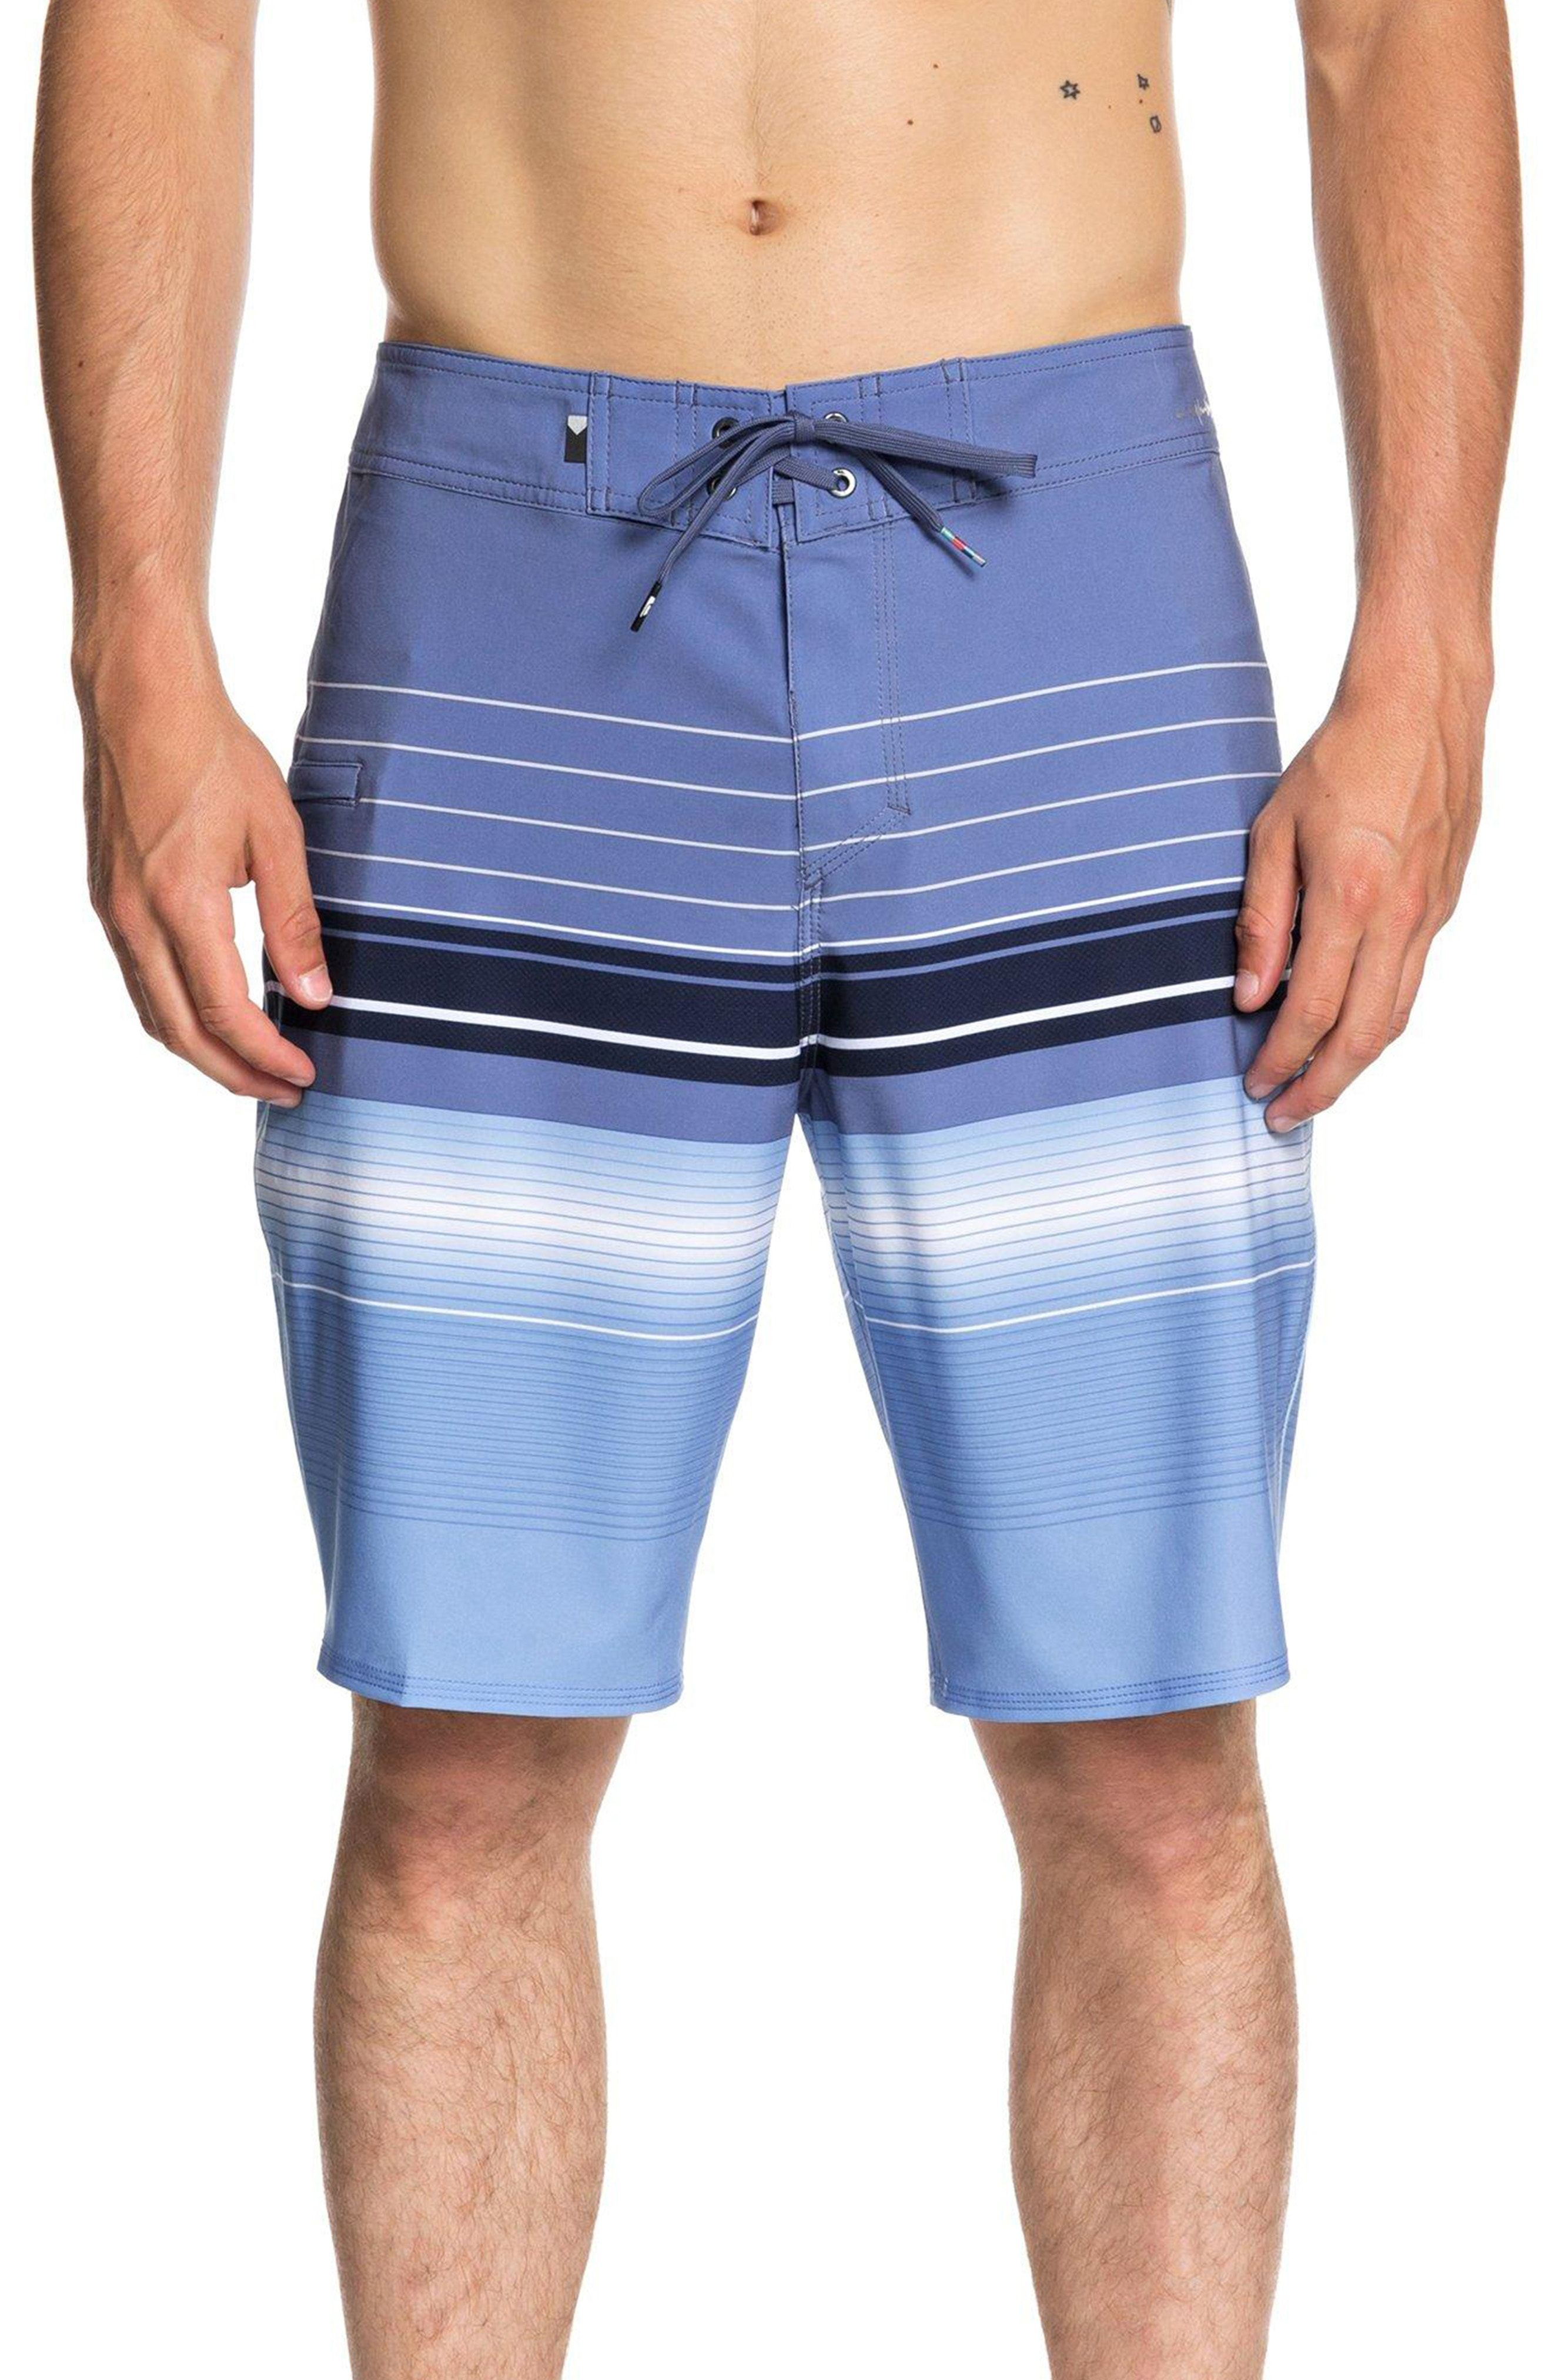 468c7af449 QUIKSILVER HIGHLINE SWELL VISION BOARD SHORTS. #quiksilver #cloth ...